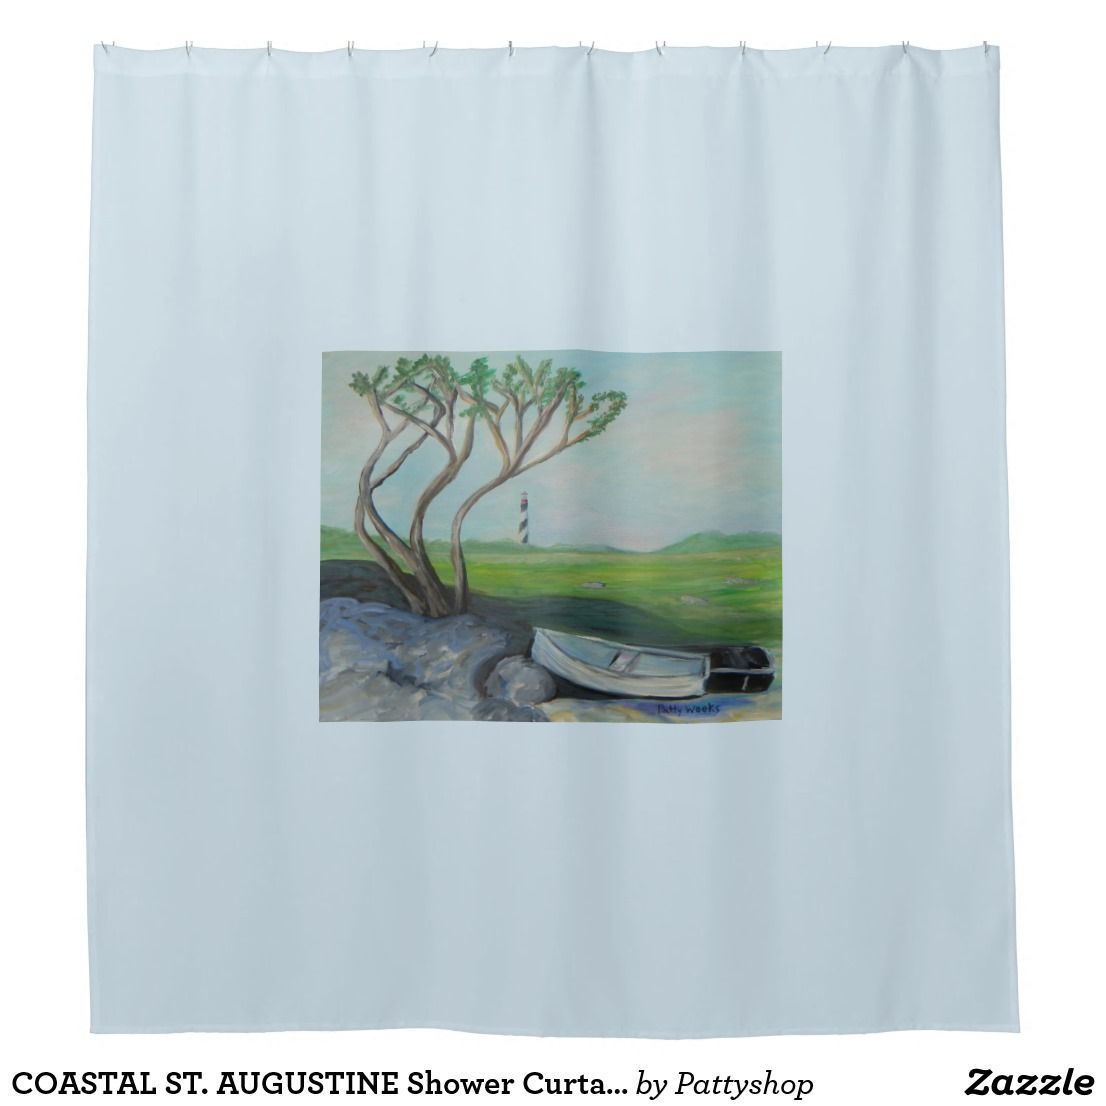 AUGUSTINE Shower Curtain Old Florida Curtains Coastal